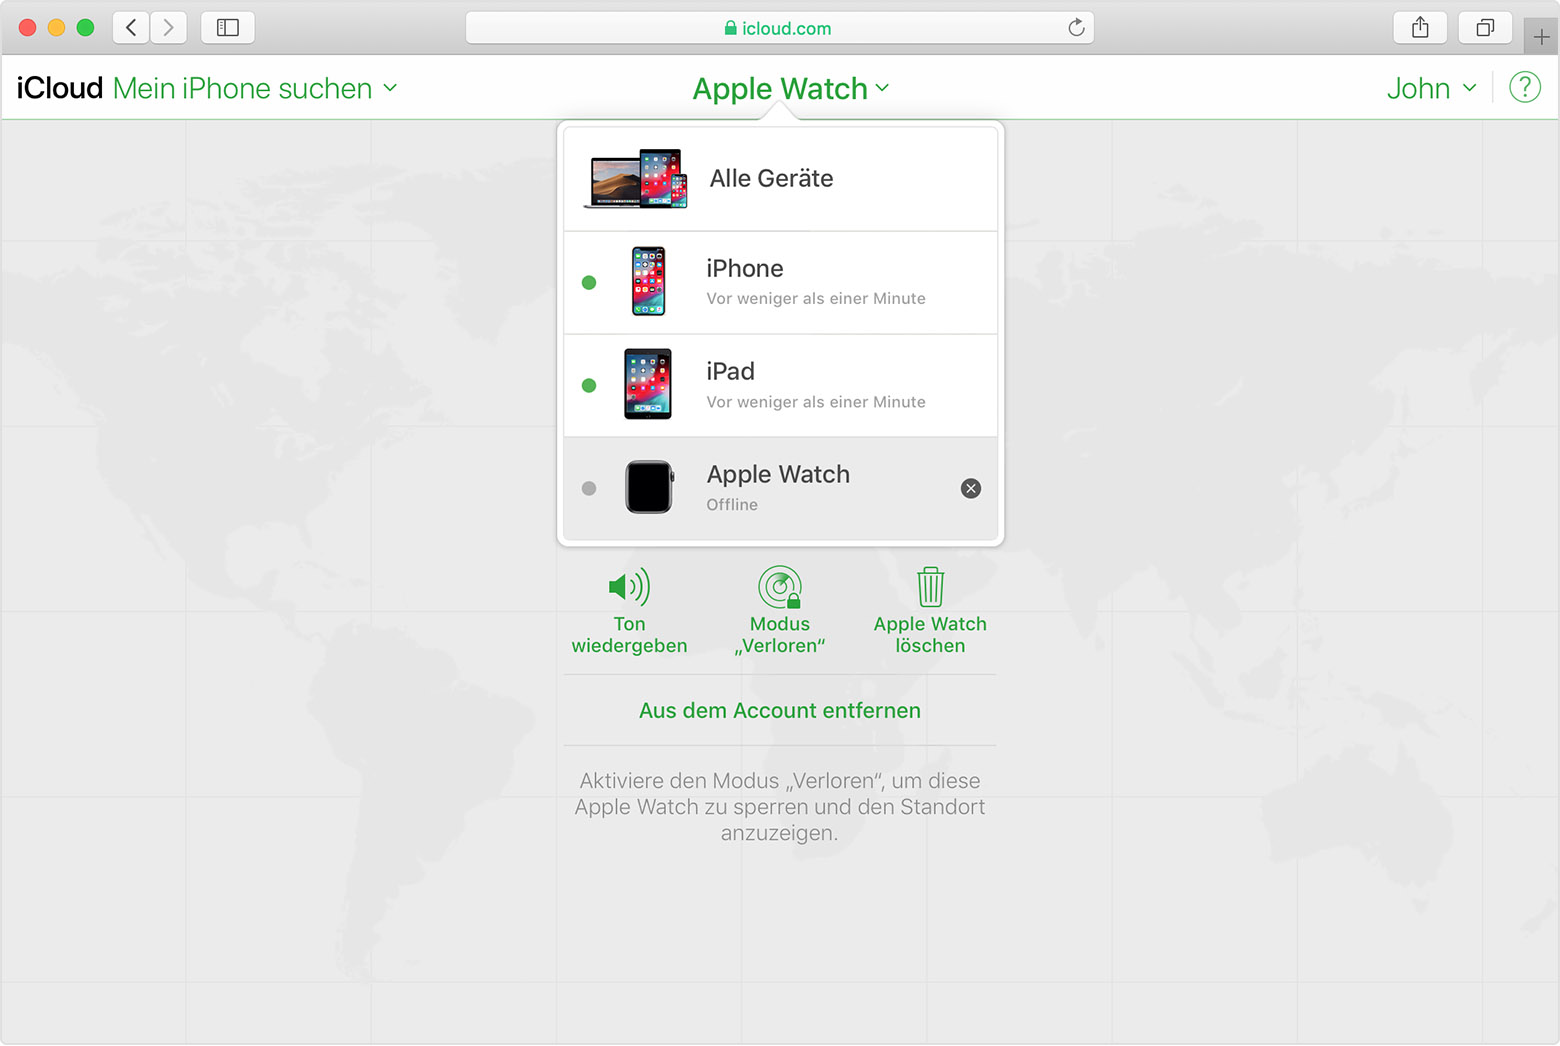 "iCloud ""Mein iPhone suchen"" zeigt Johns Apple Watch"